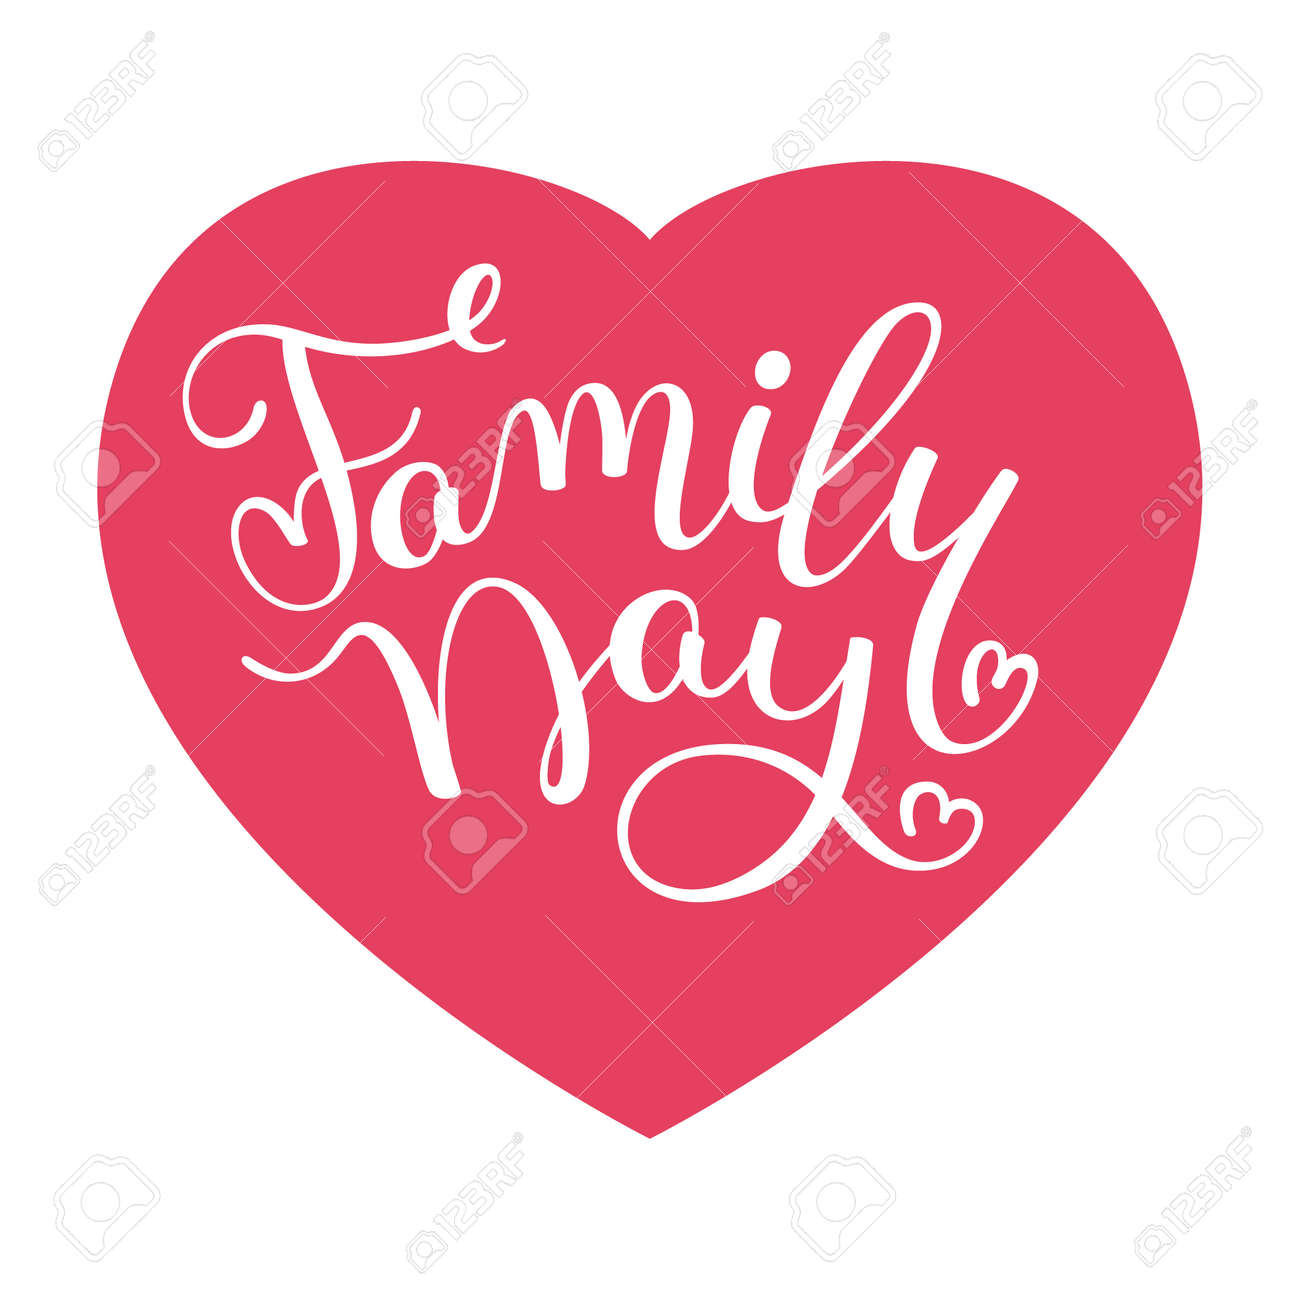 Family Day Hand Lettering With Heart Template For Greeting Cards